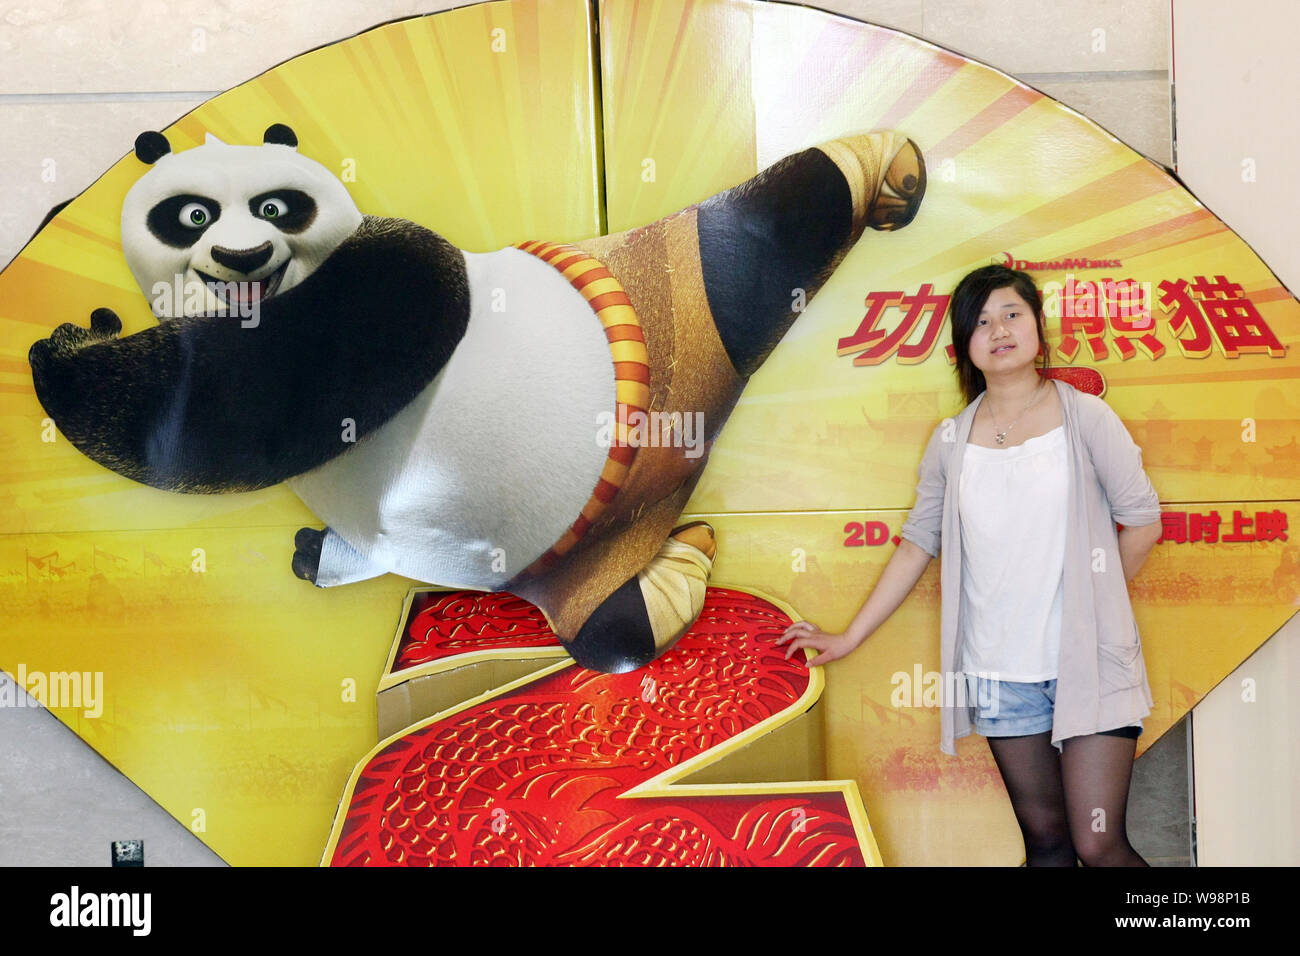 Kung Fu Panda Poster High Resolution Stock Photography And Images Alamy